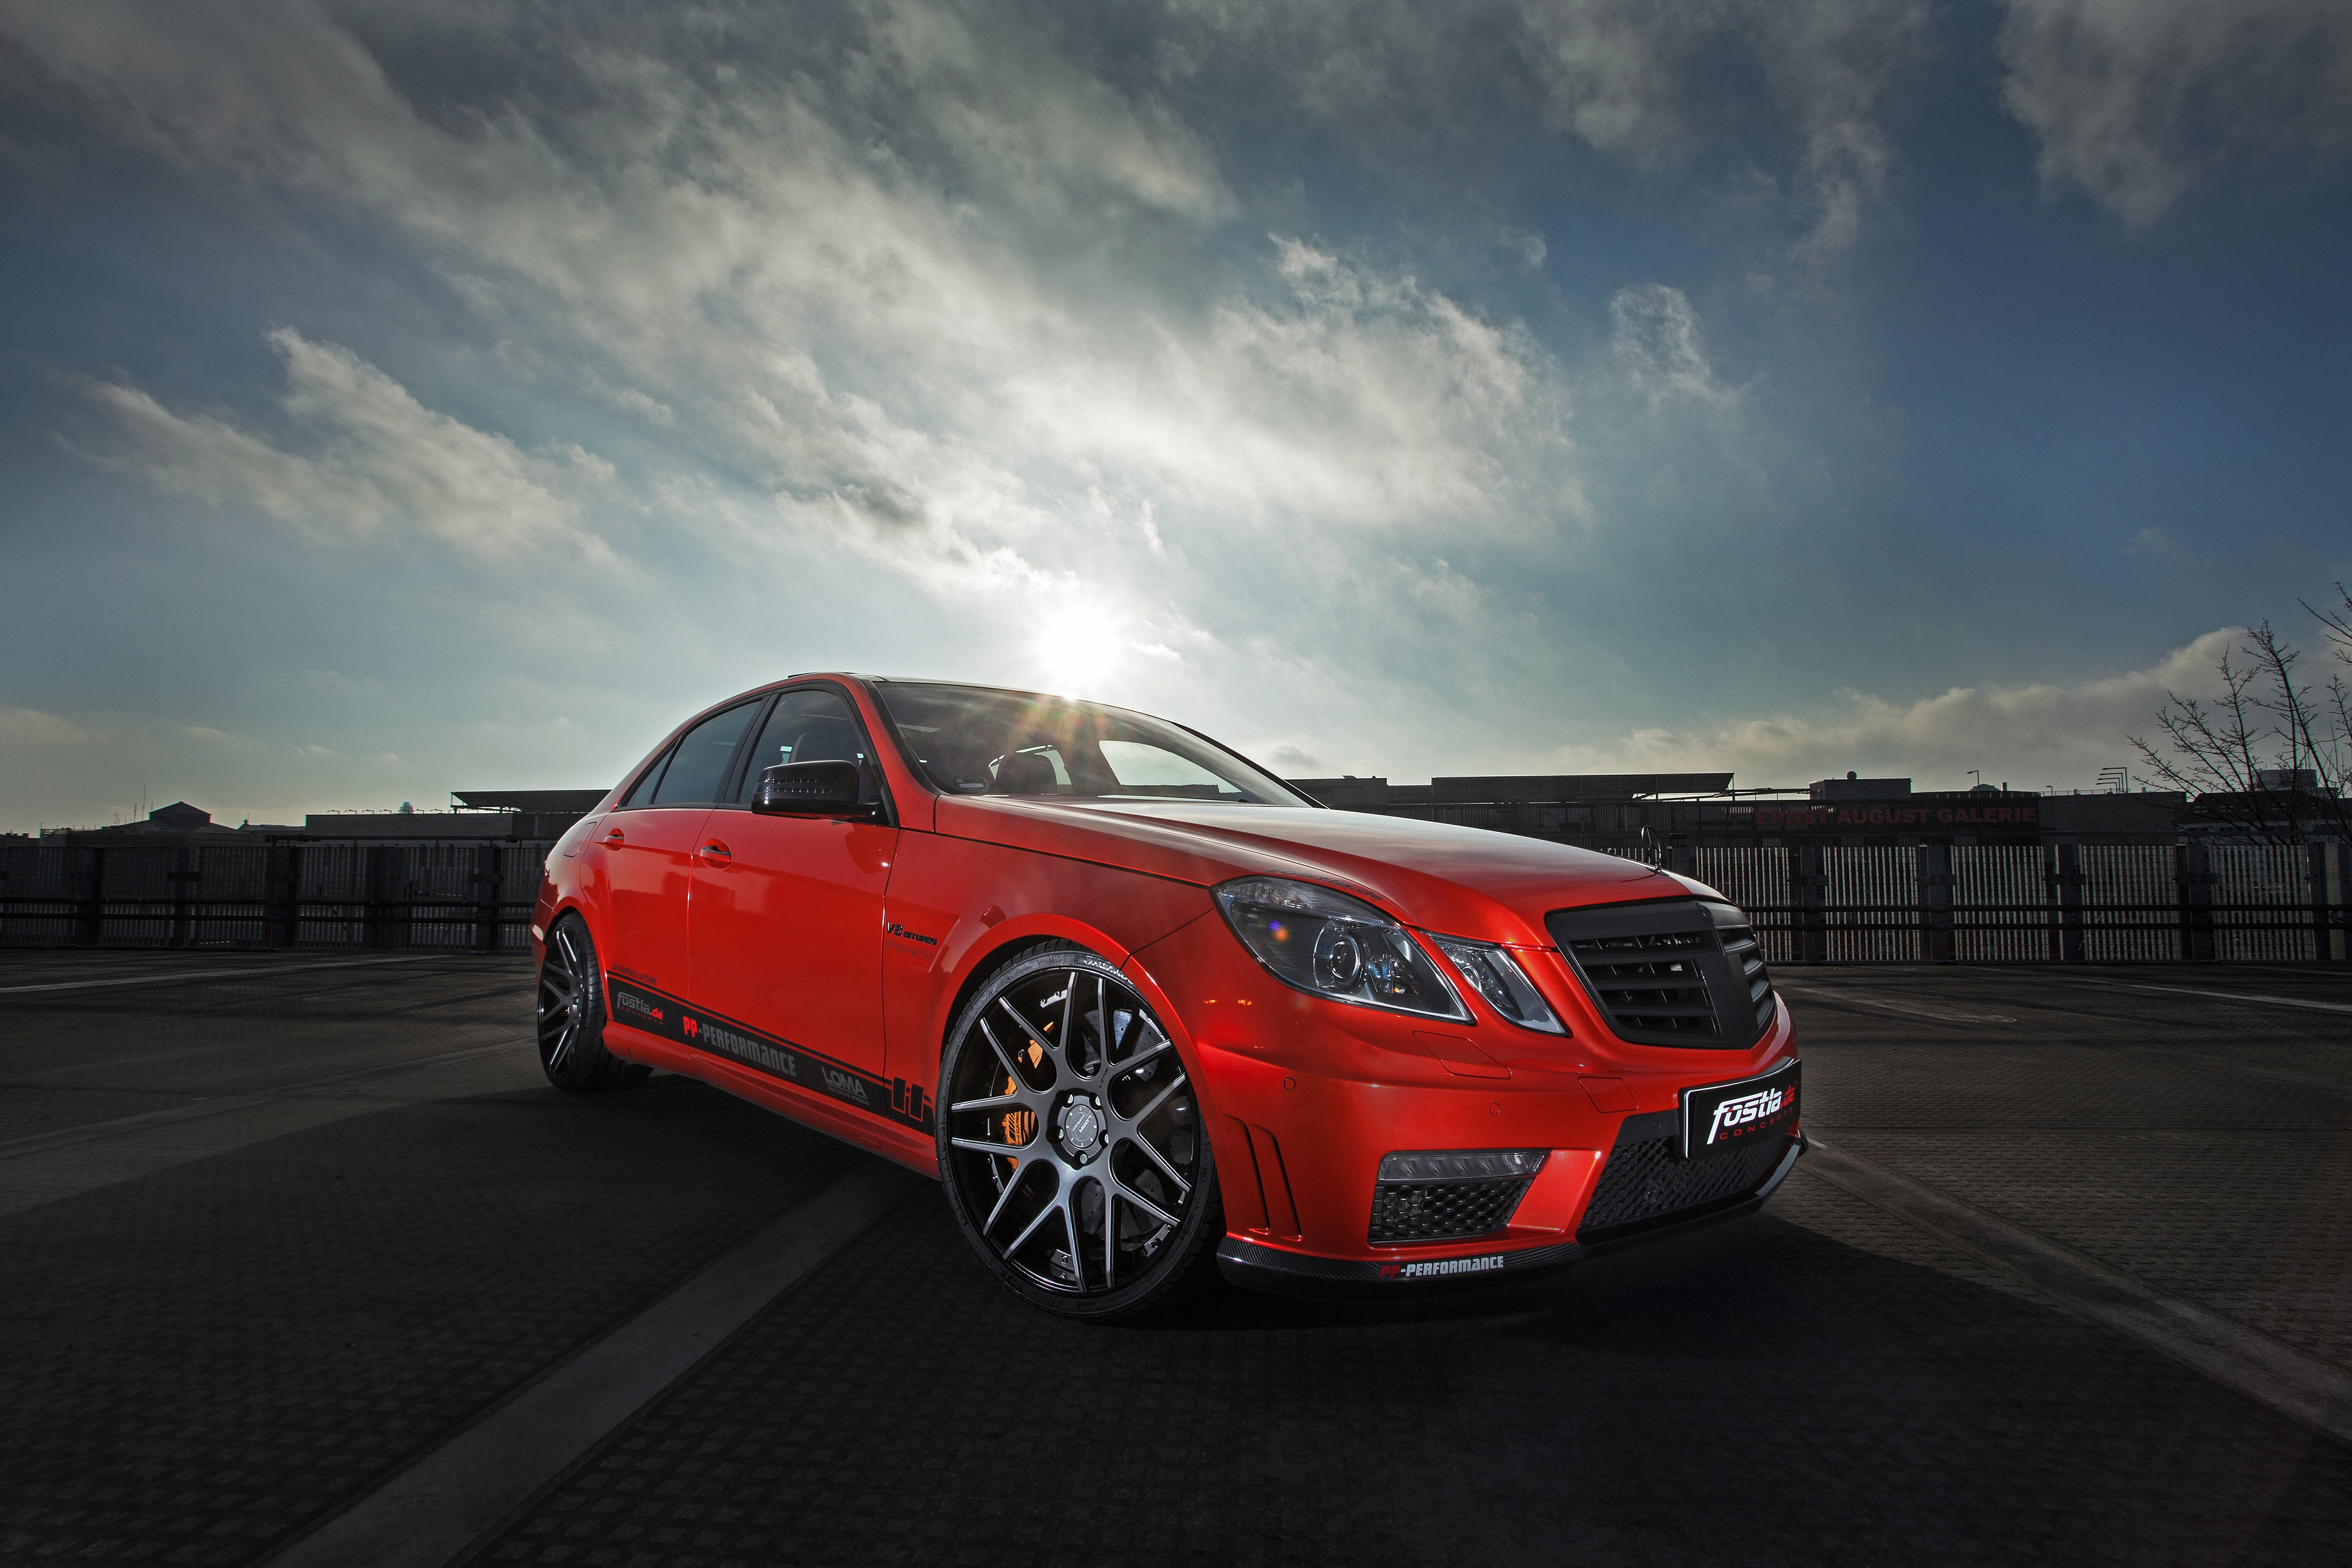 2015 fostla mercedes benz e63 amg w212 tuning wallpaper 4096x2731 619203 wallpaperup. Black Bedroom Furniture Sets. Home Design Ideas